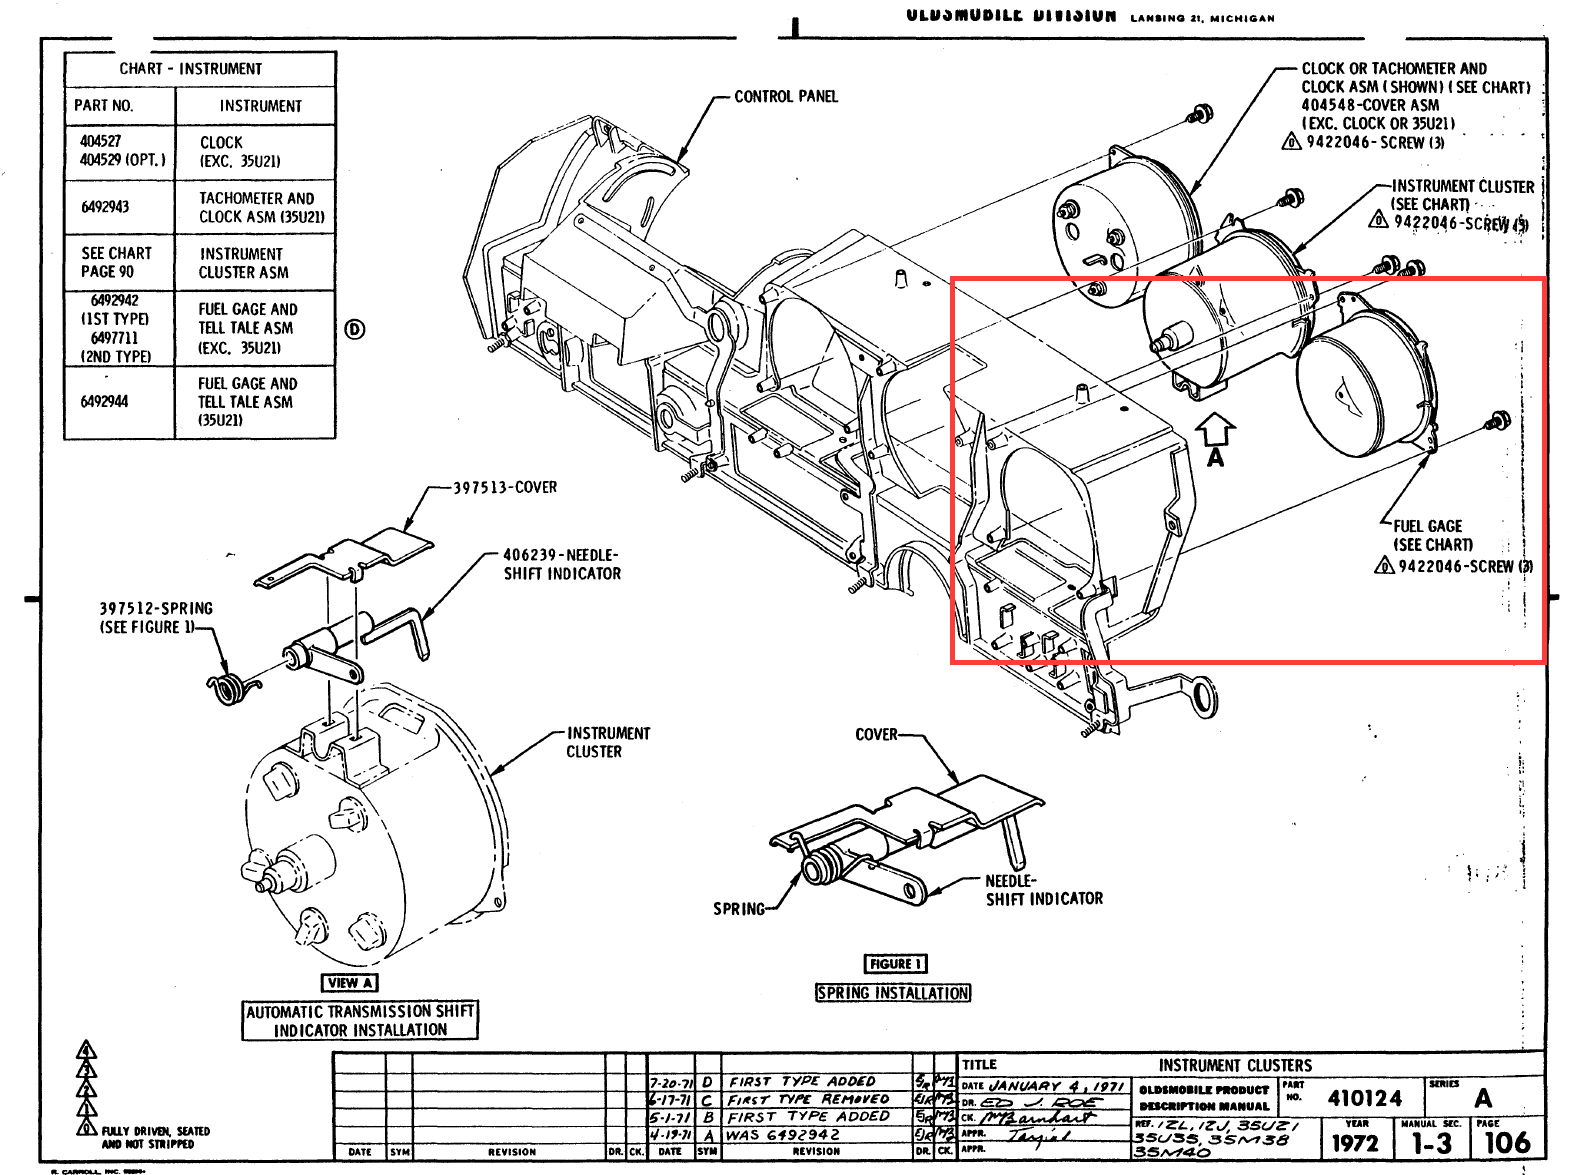 1971 oldsmobile cutl wiring diagram